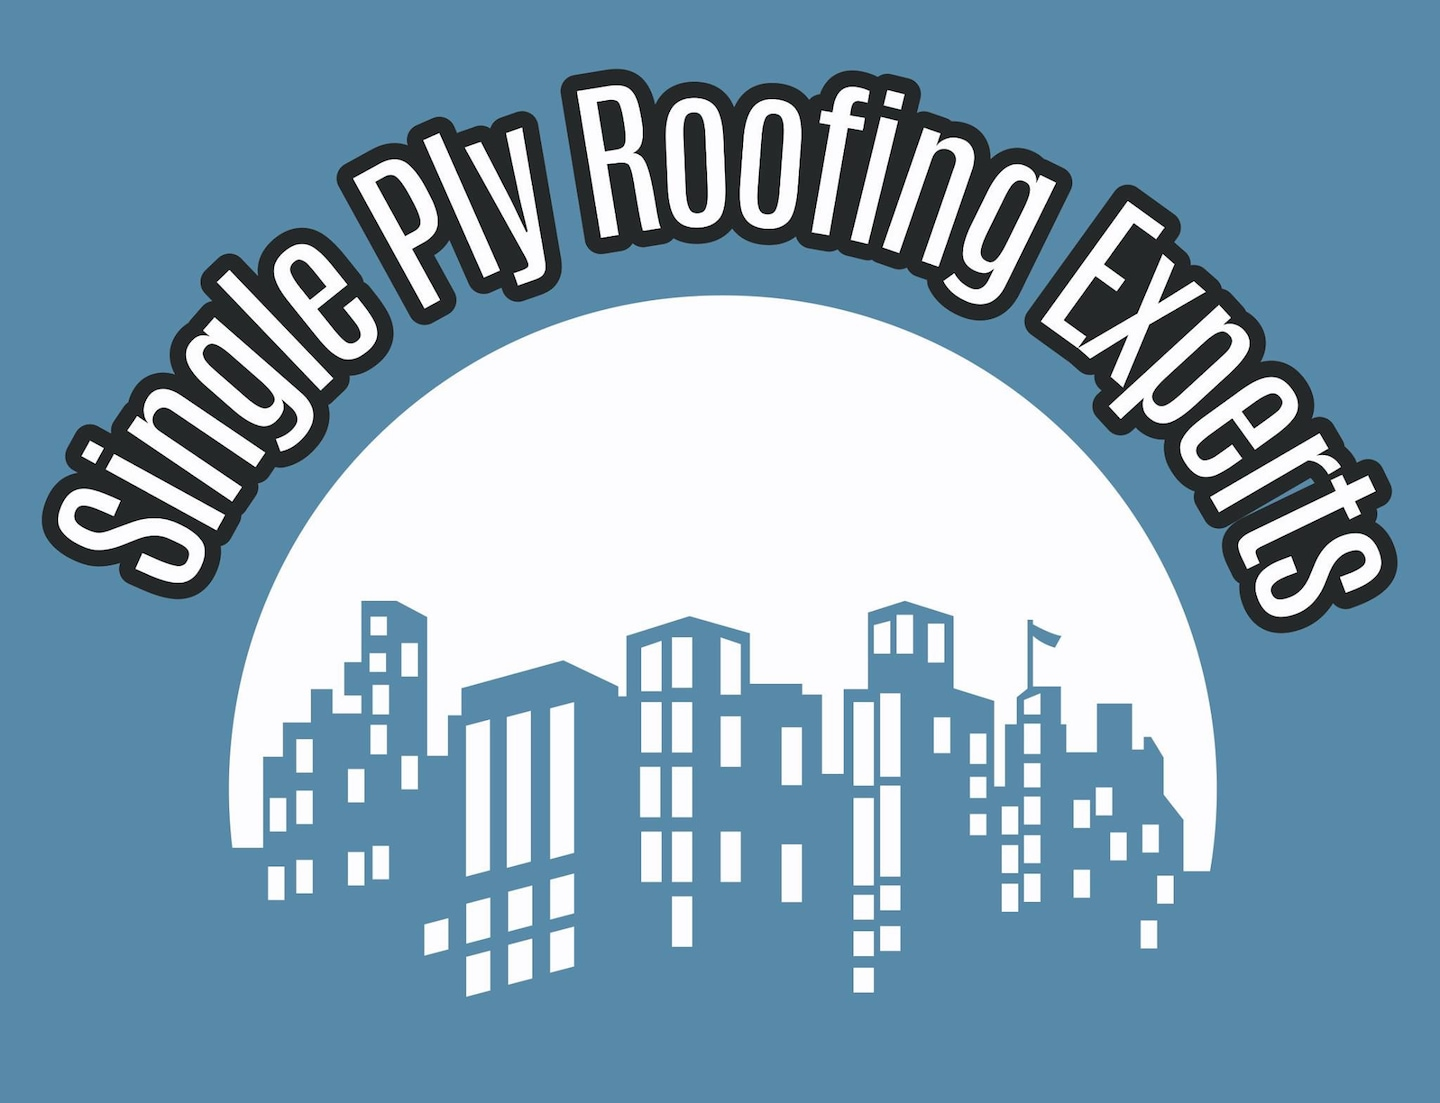 SINGLE-PLY ROOFING EXPERTS